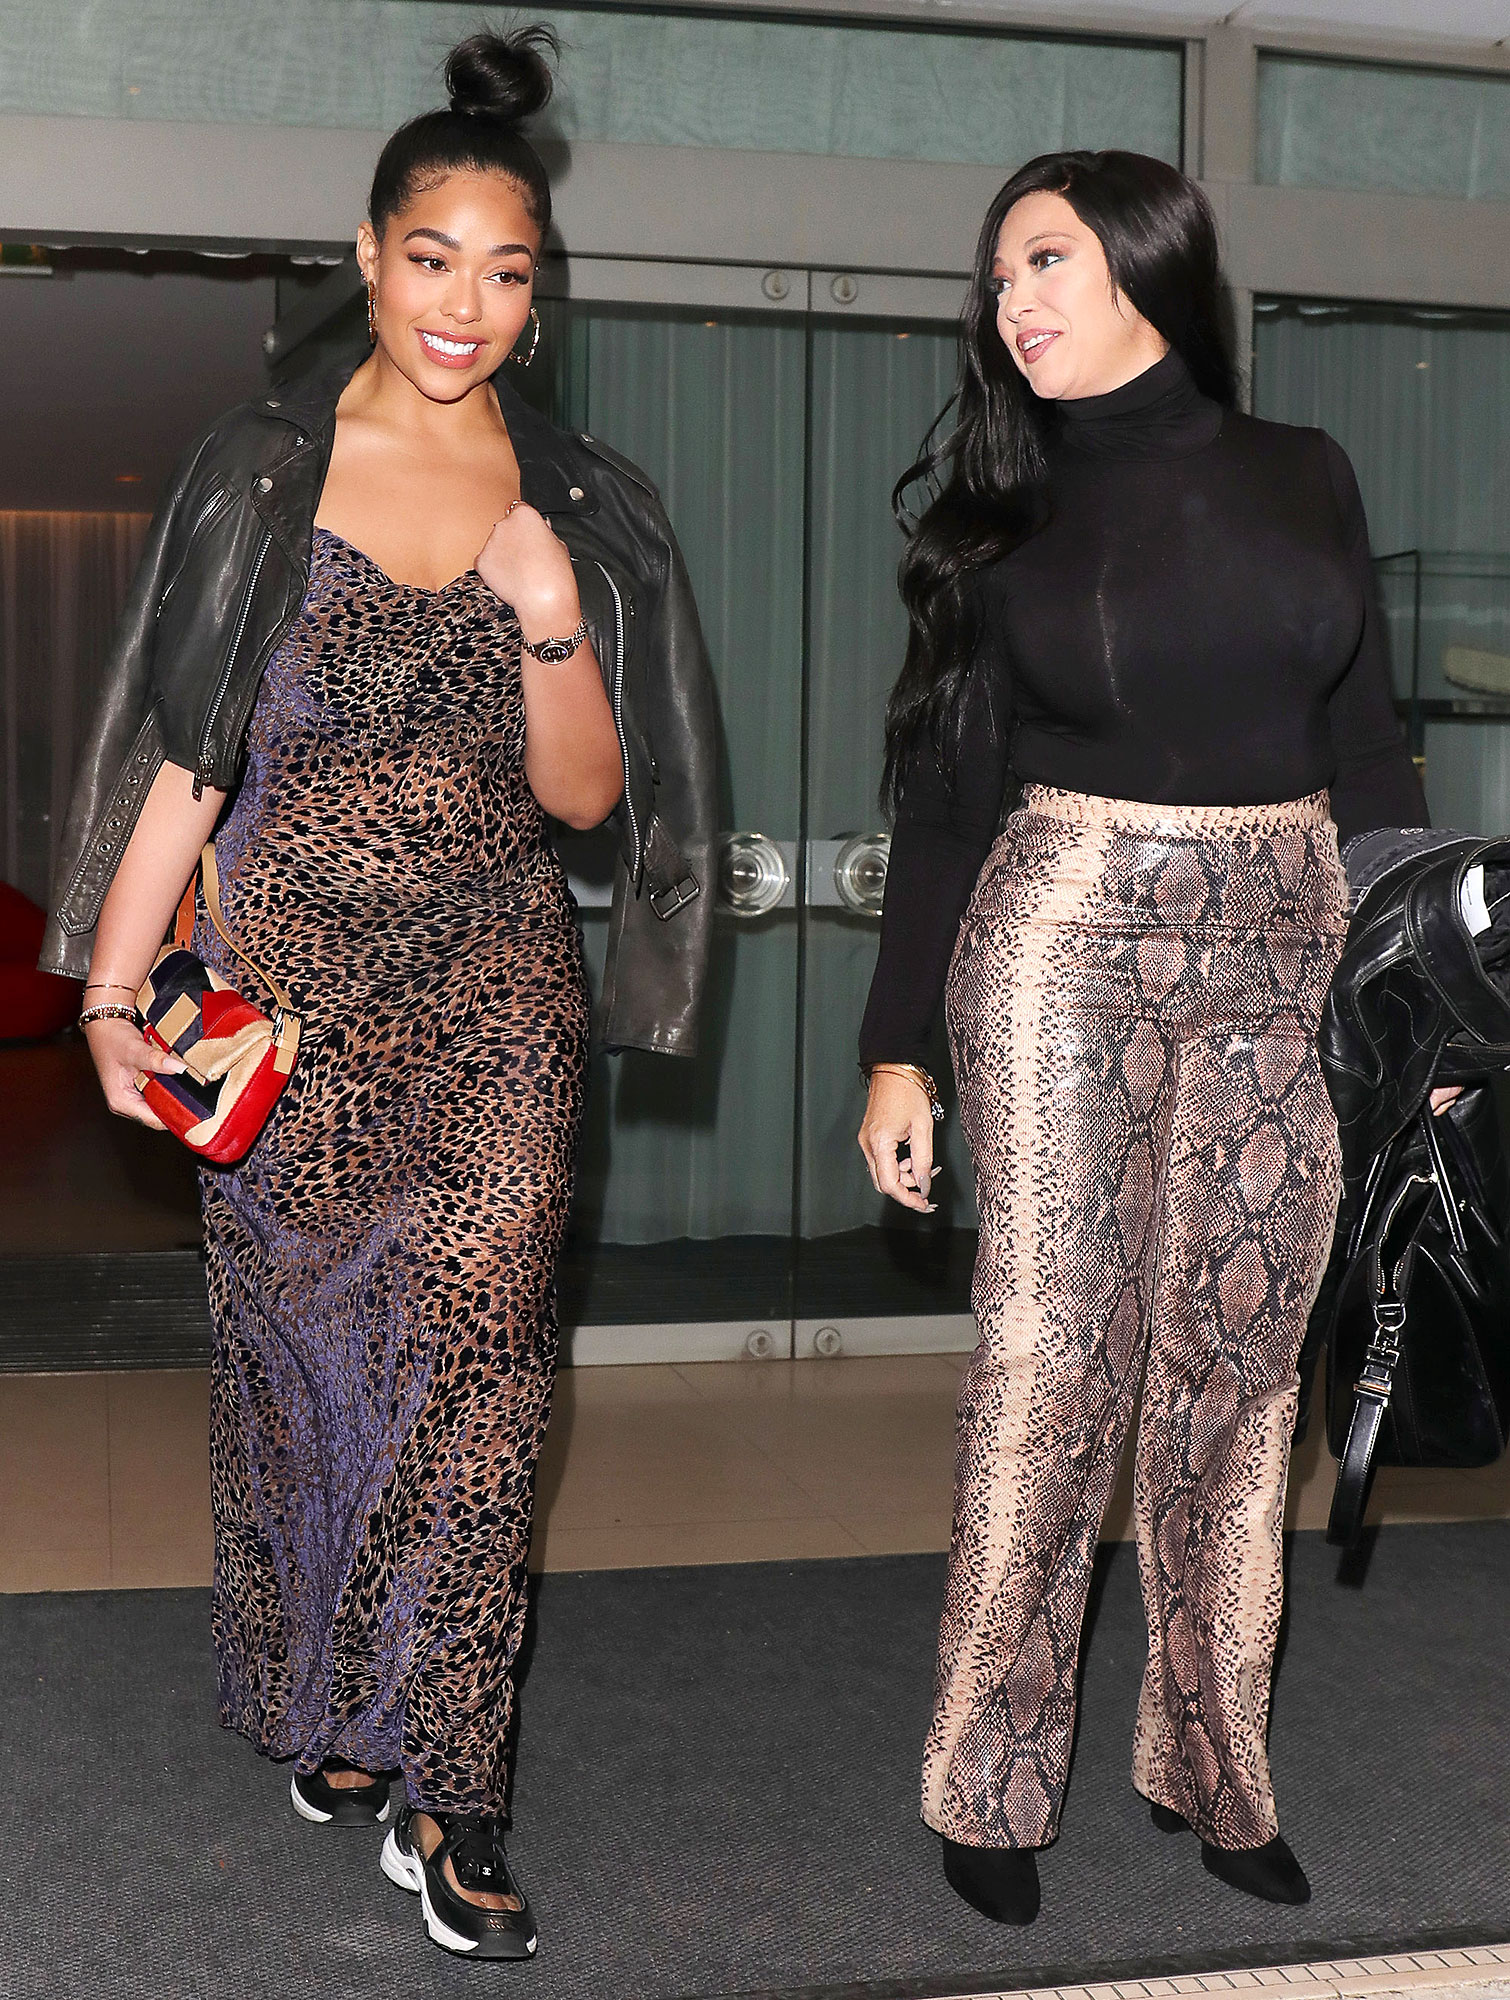 Jordyn Woods Elizabeth Woods Always Love Kylie Jenner - Jordyn Woods and Elizabeth Woods visit Scalini restaurant in London to celebrate Elizabeth's birthday and Mother's Day on March 31, 2019.